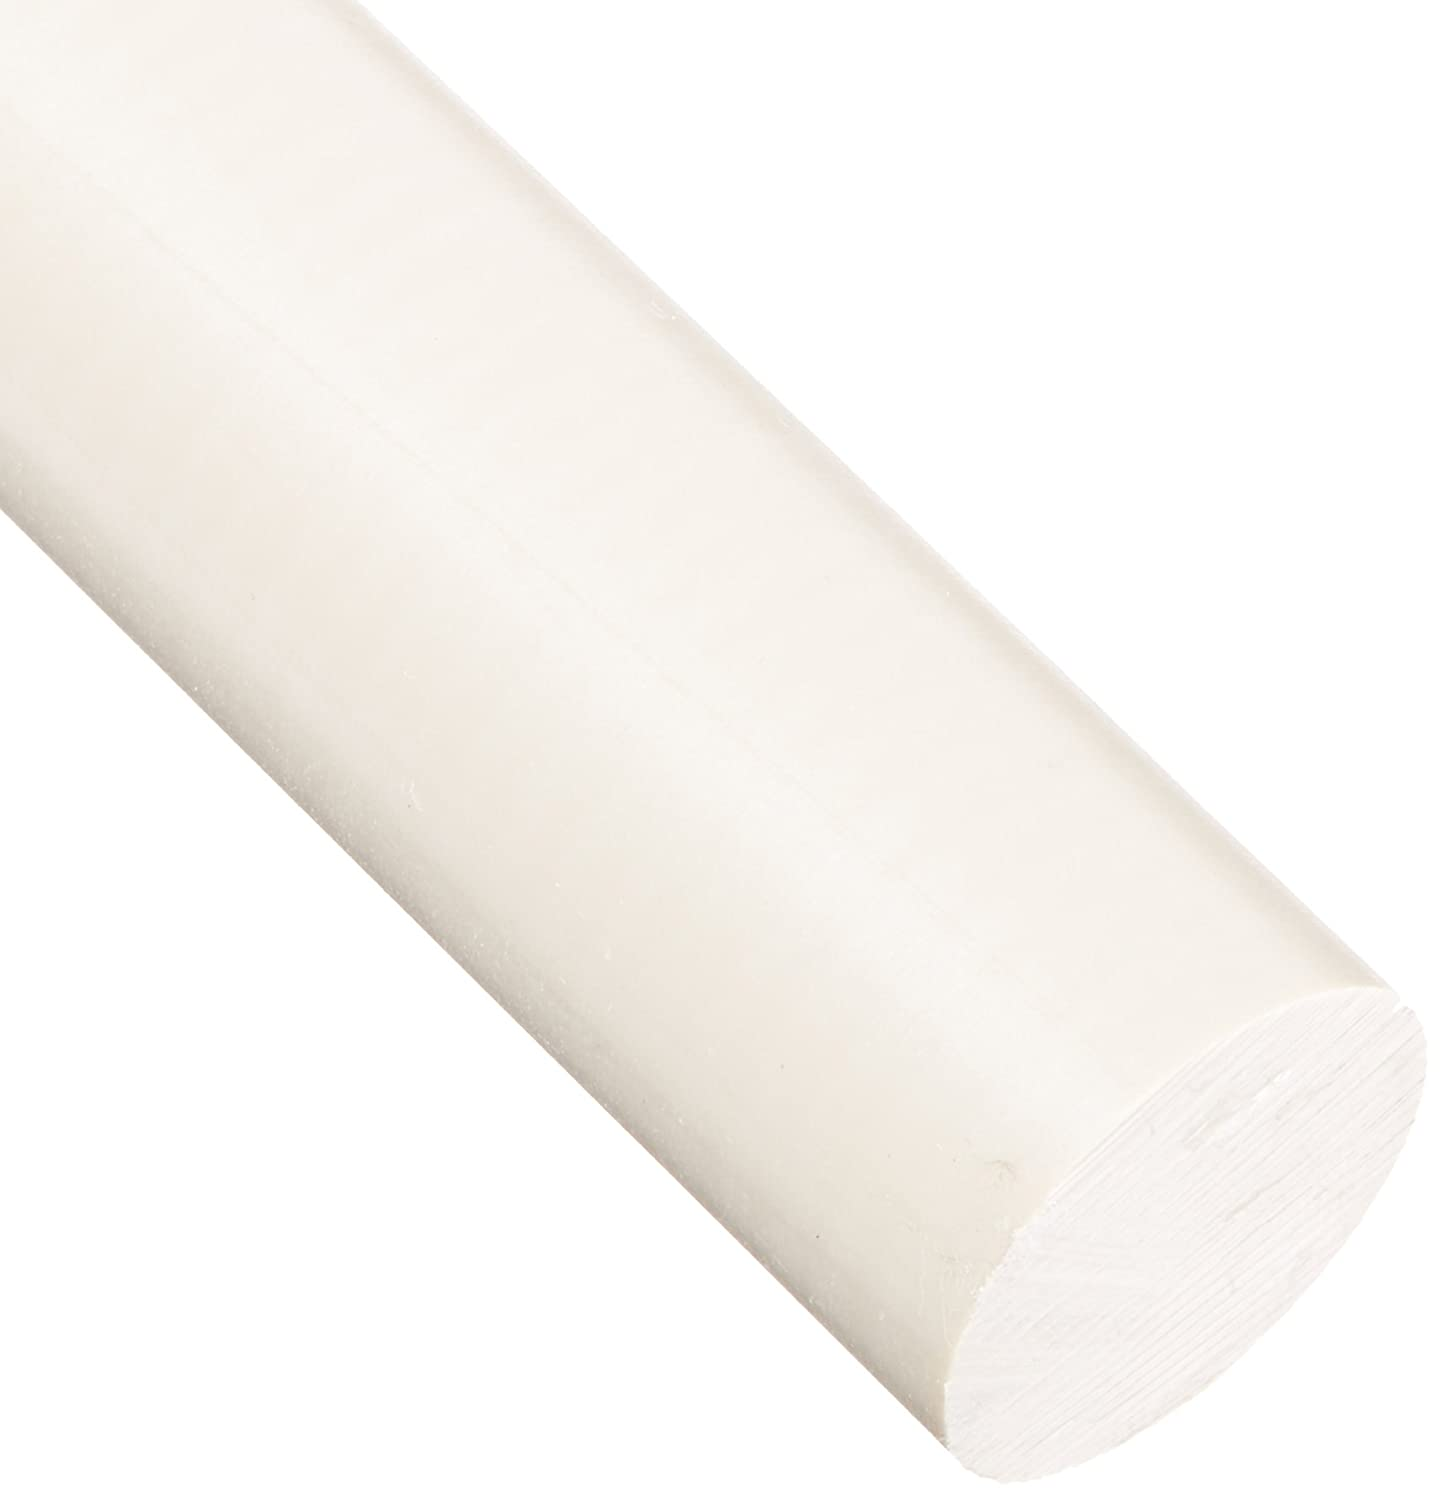 PEEK (Polyetheretherketone) Round Rod, Opaque Tan, Meets ASTM D6262, 1' Diameter, 3' Length 1 Diameter 3 Length Small Parts Inc 903249